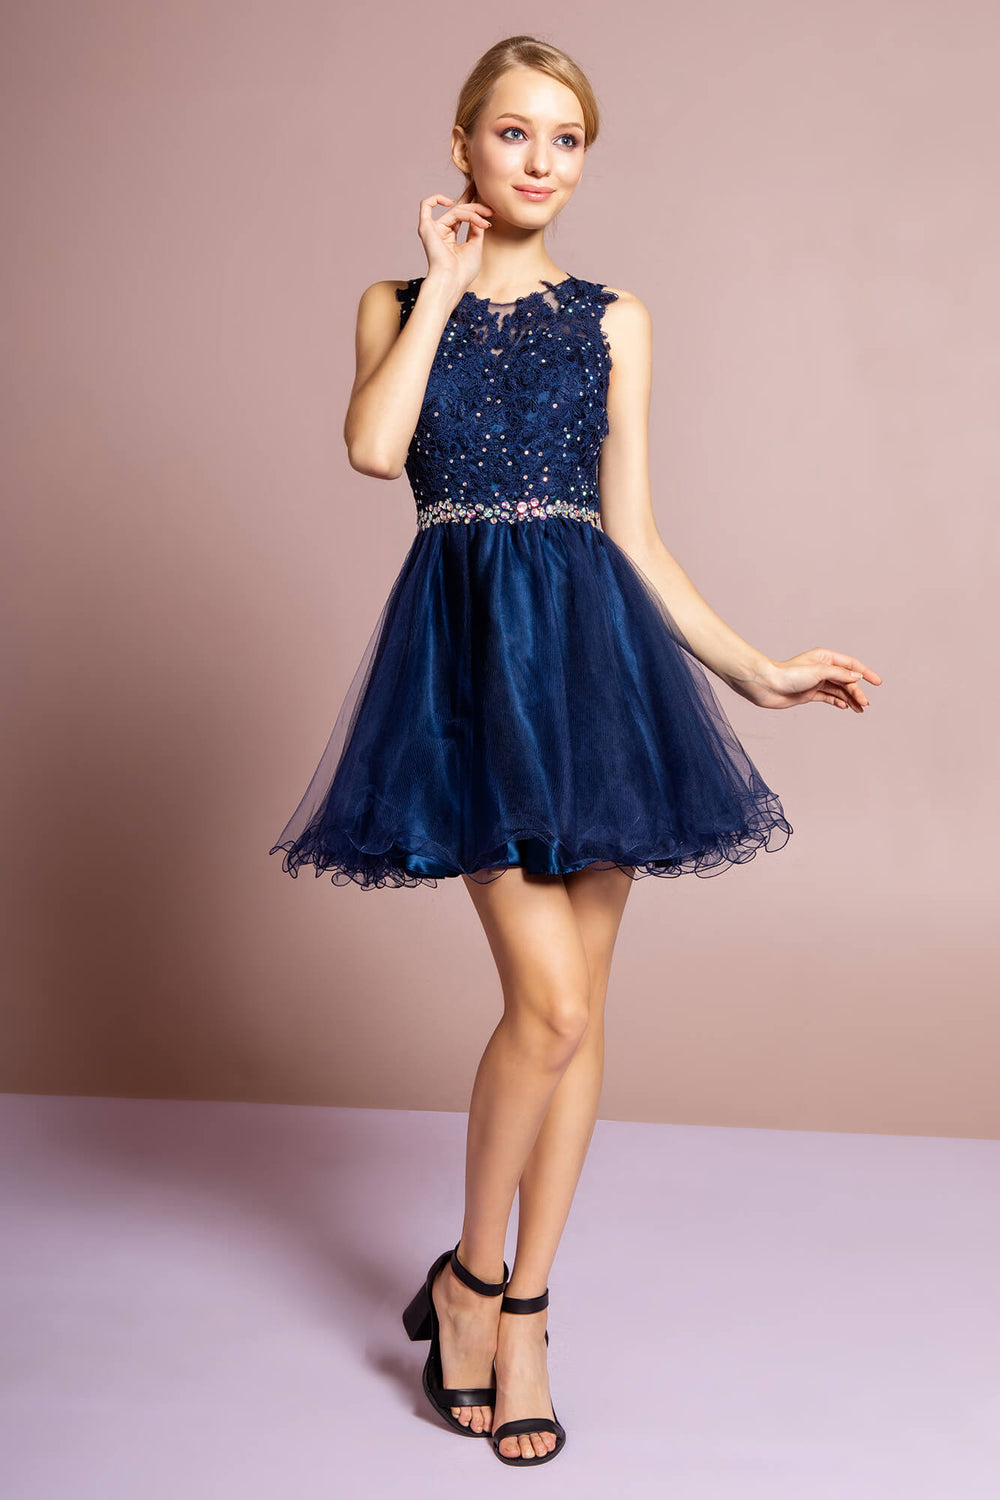 Sleeveless Prom Short Dress Homecoming - The Dress Outlet Navy